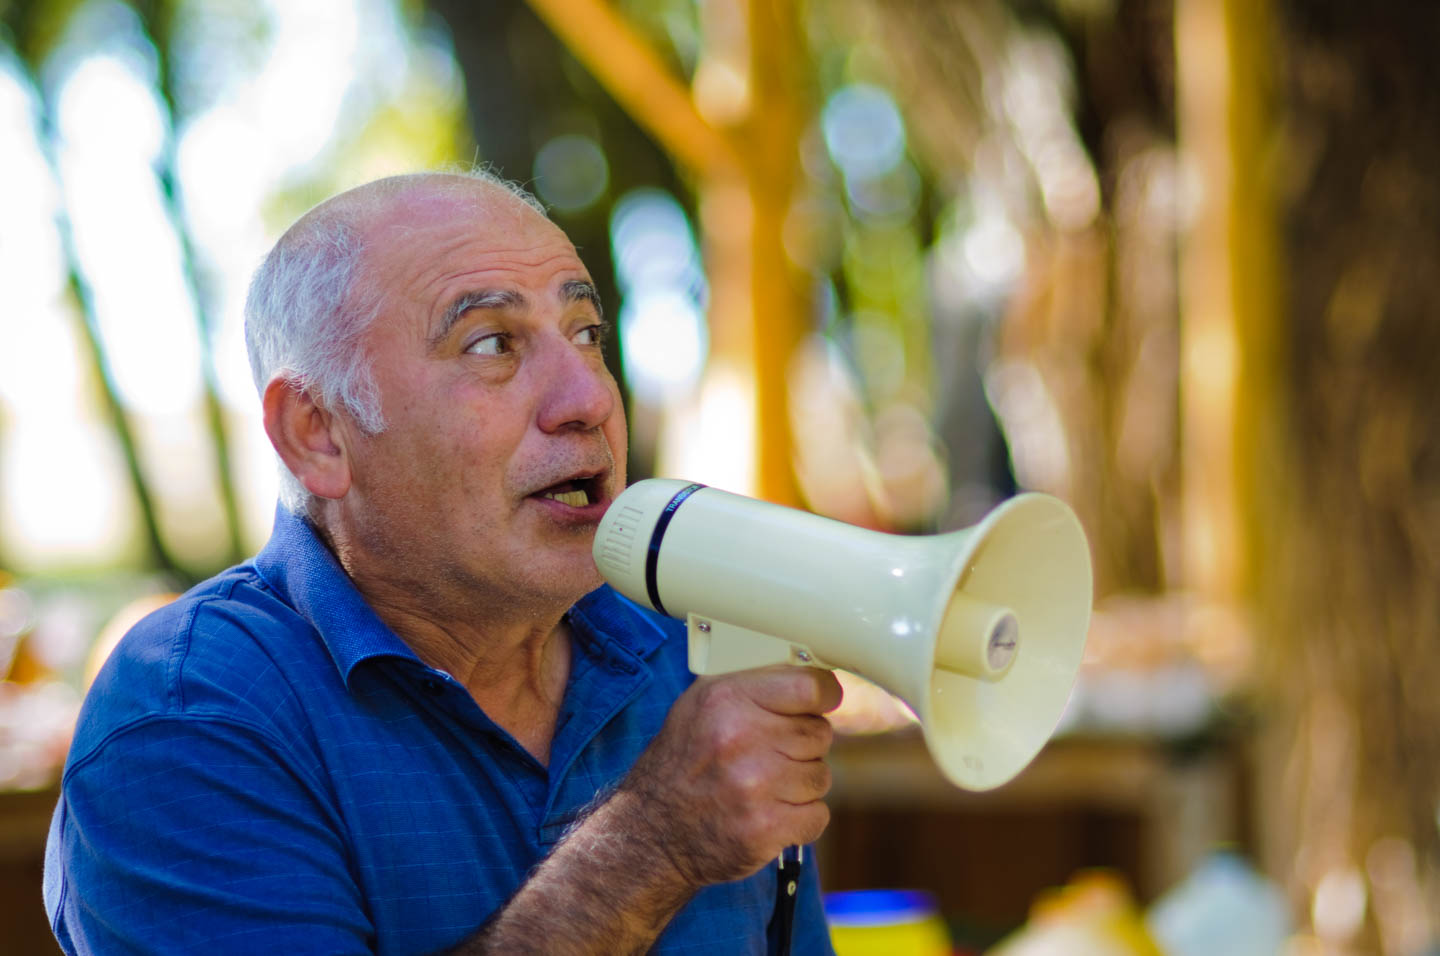 Communication with a bullhorn